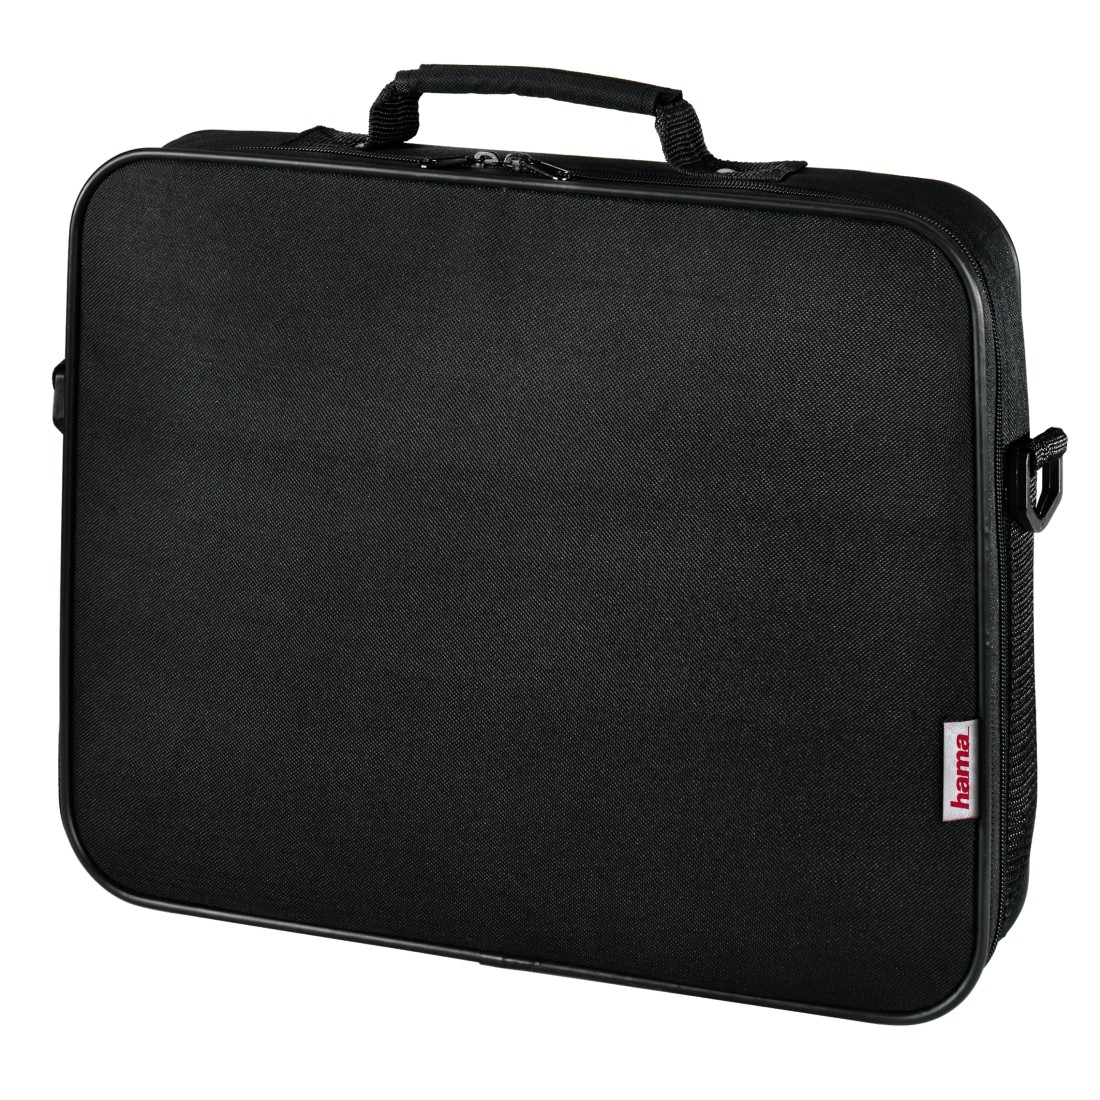 "abx High-Res Image - Hama, ""Sportsline Basic"" Notebook Bag, display sizes up to 40 cm (15.6"")"